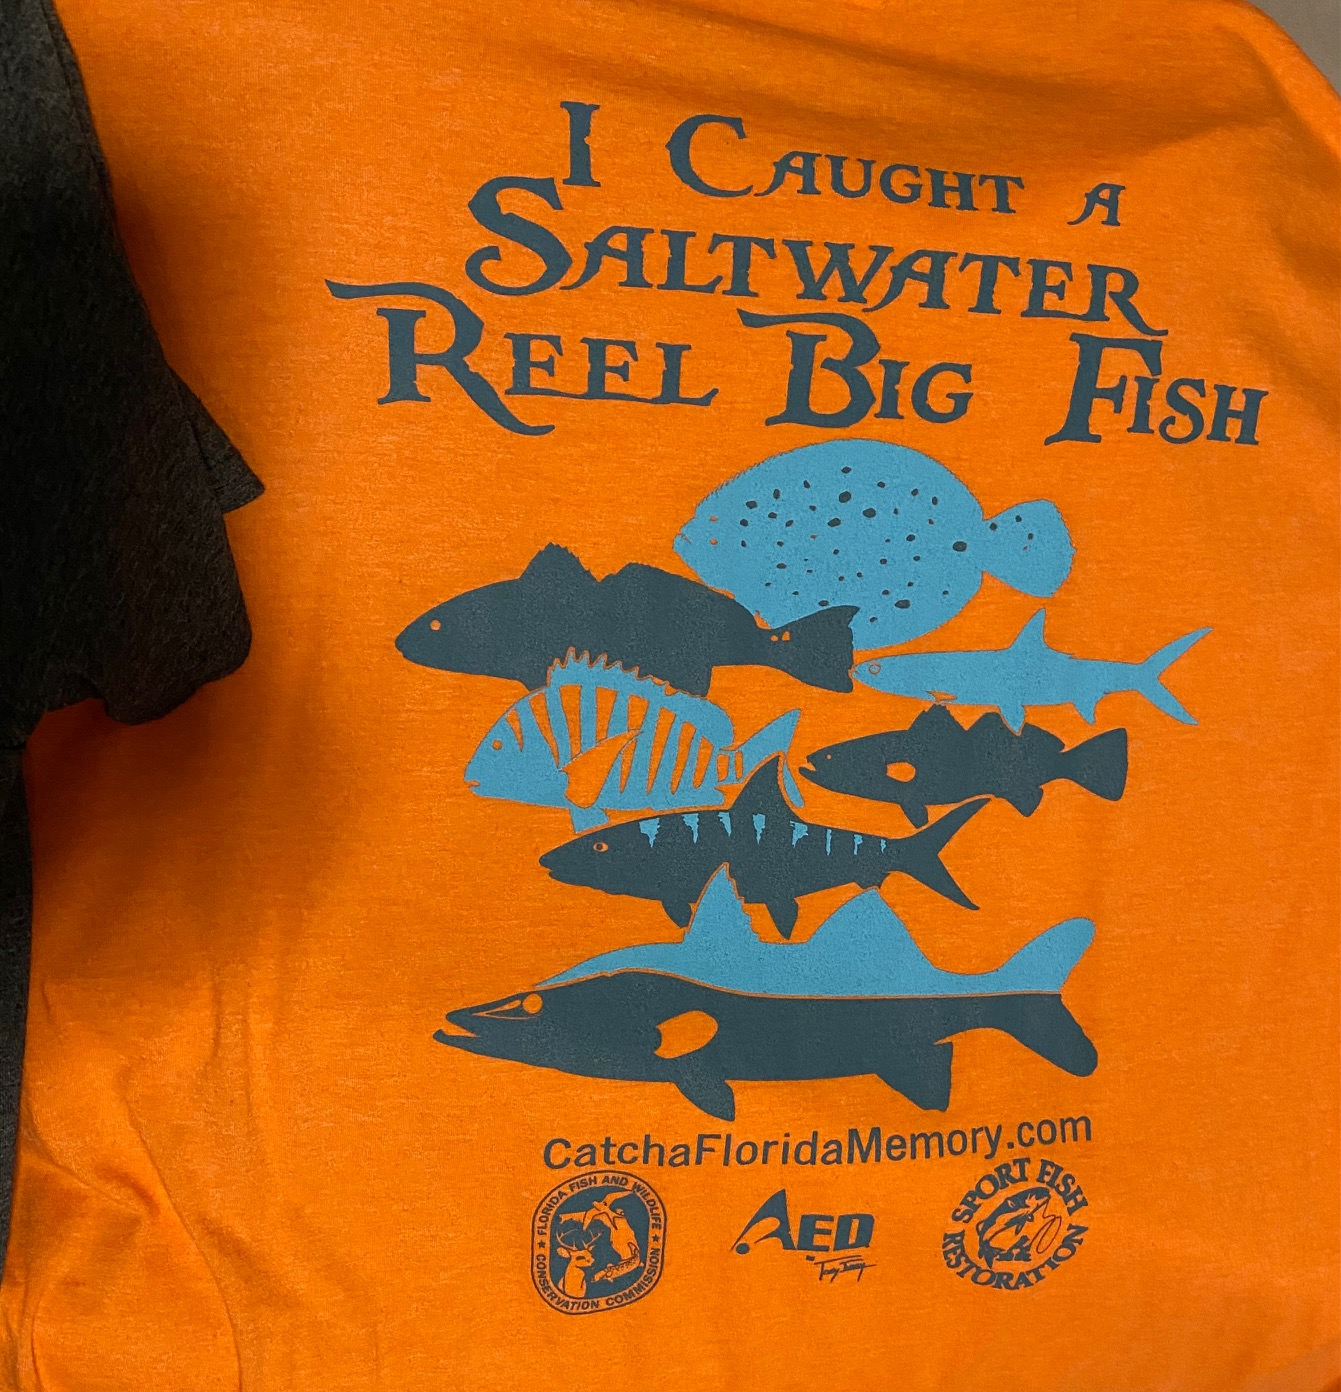 Orange shirt with Reel Big Fish logo. Part of the Angler Recognition Prize pack